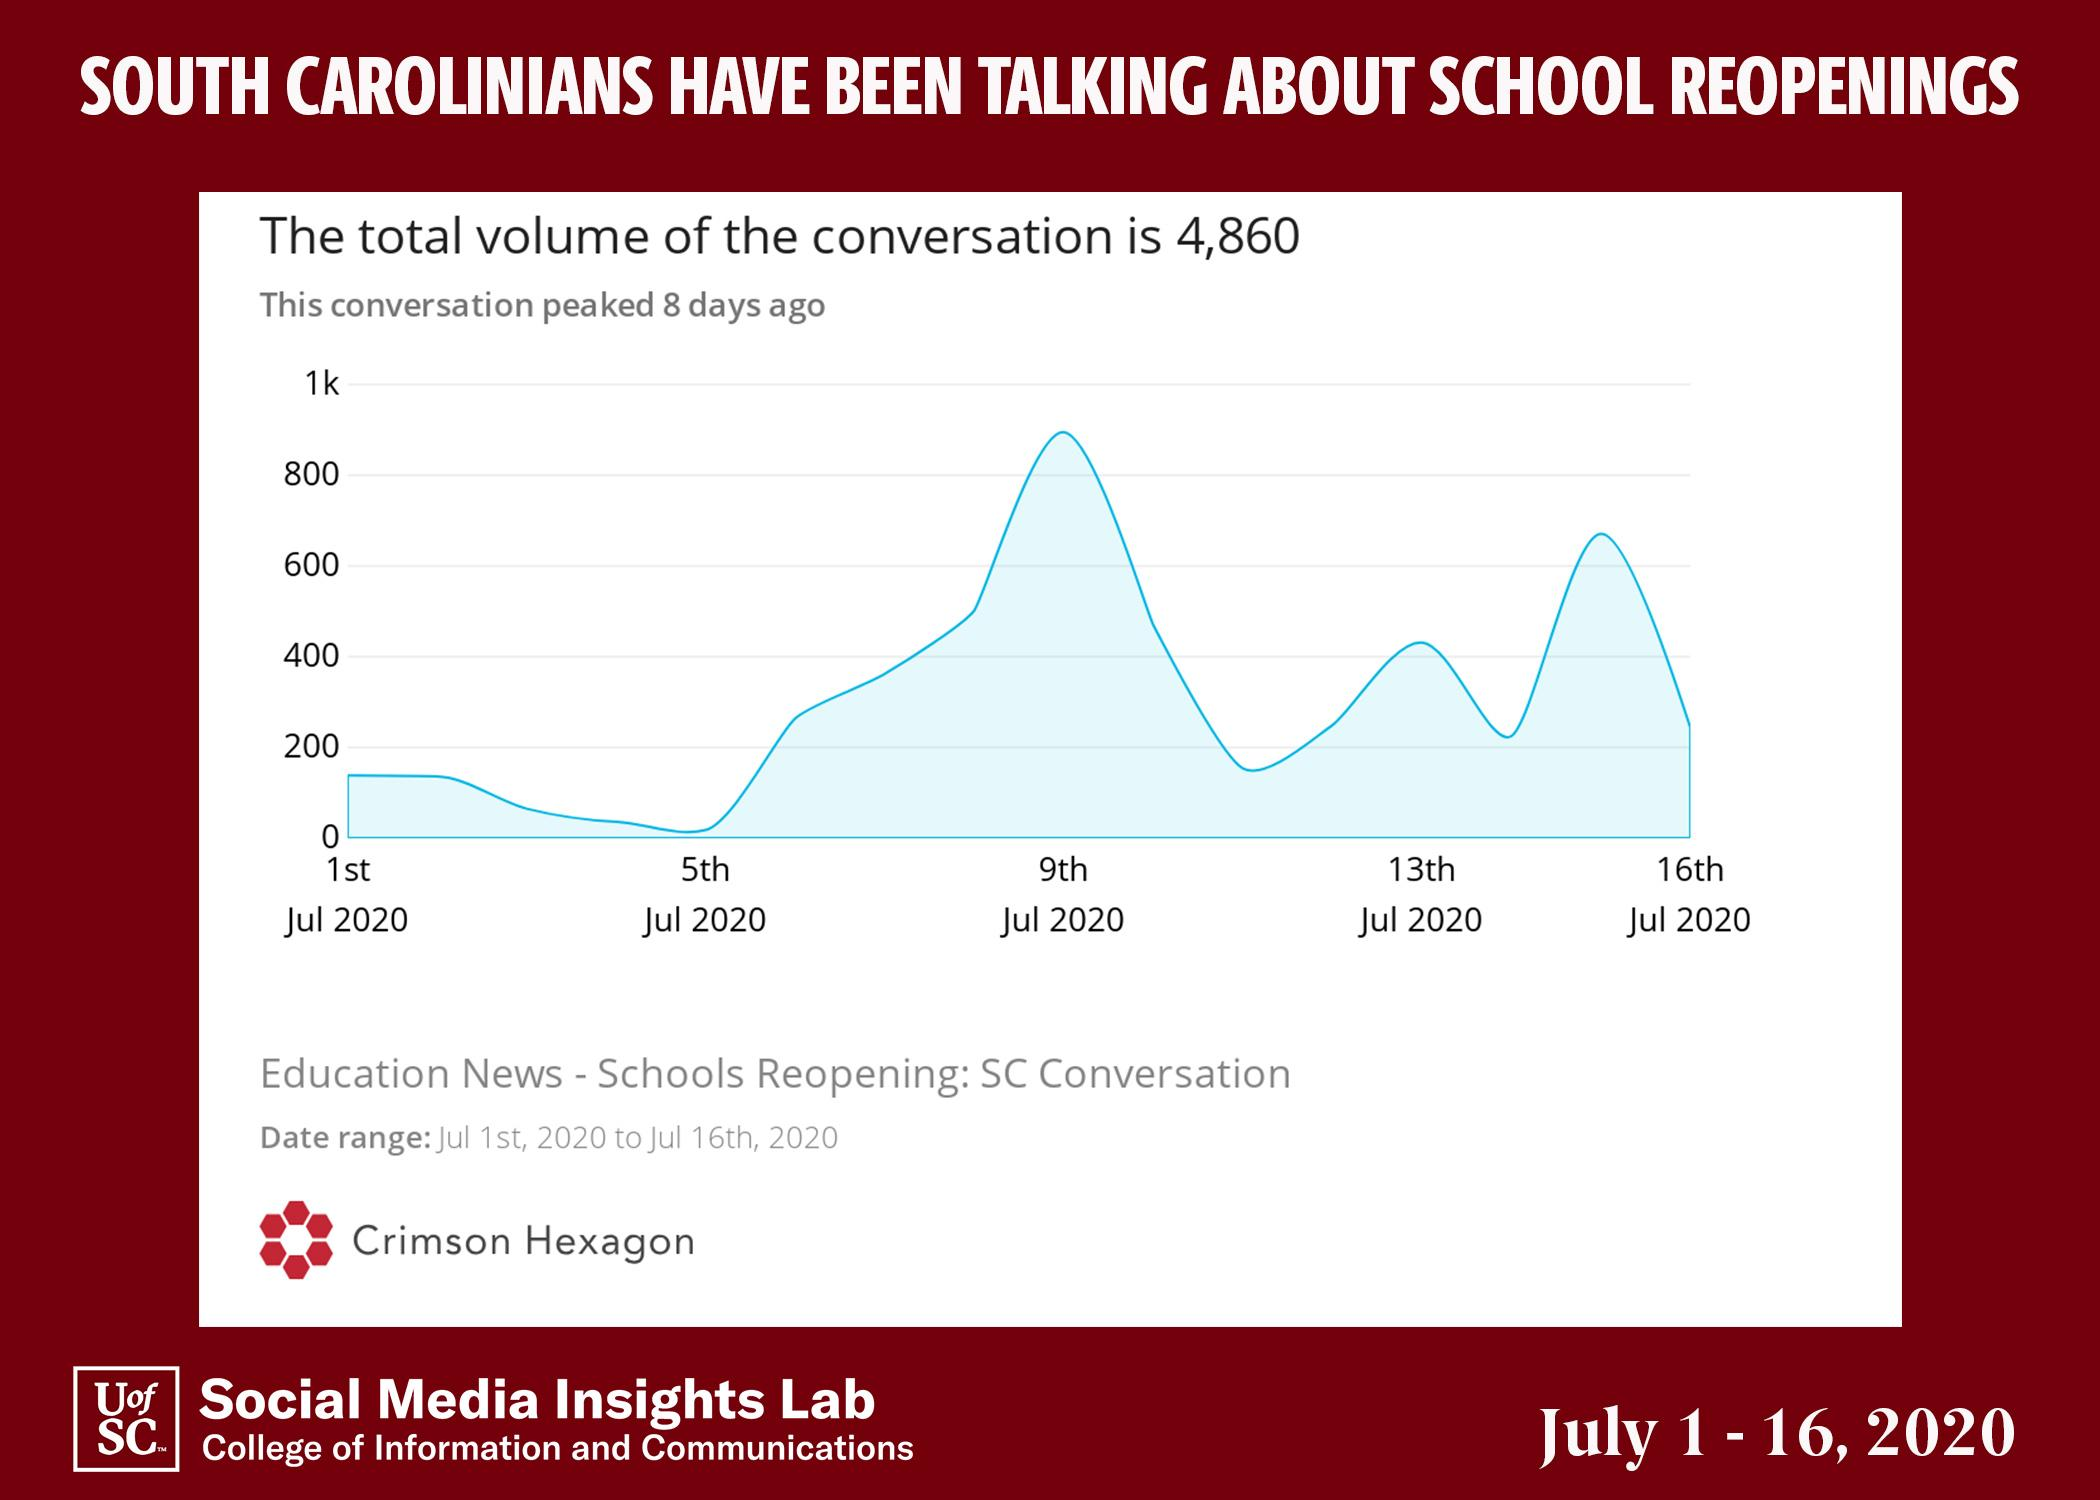 Conversations about school reopening spiked earlier in July when Joe Biden attacked U.S. Education Secretary Betsy DeVos and then on July 15 when Gov. McMaster called for daily, in person classes.